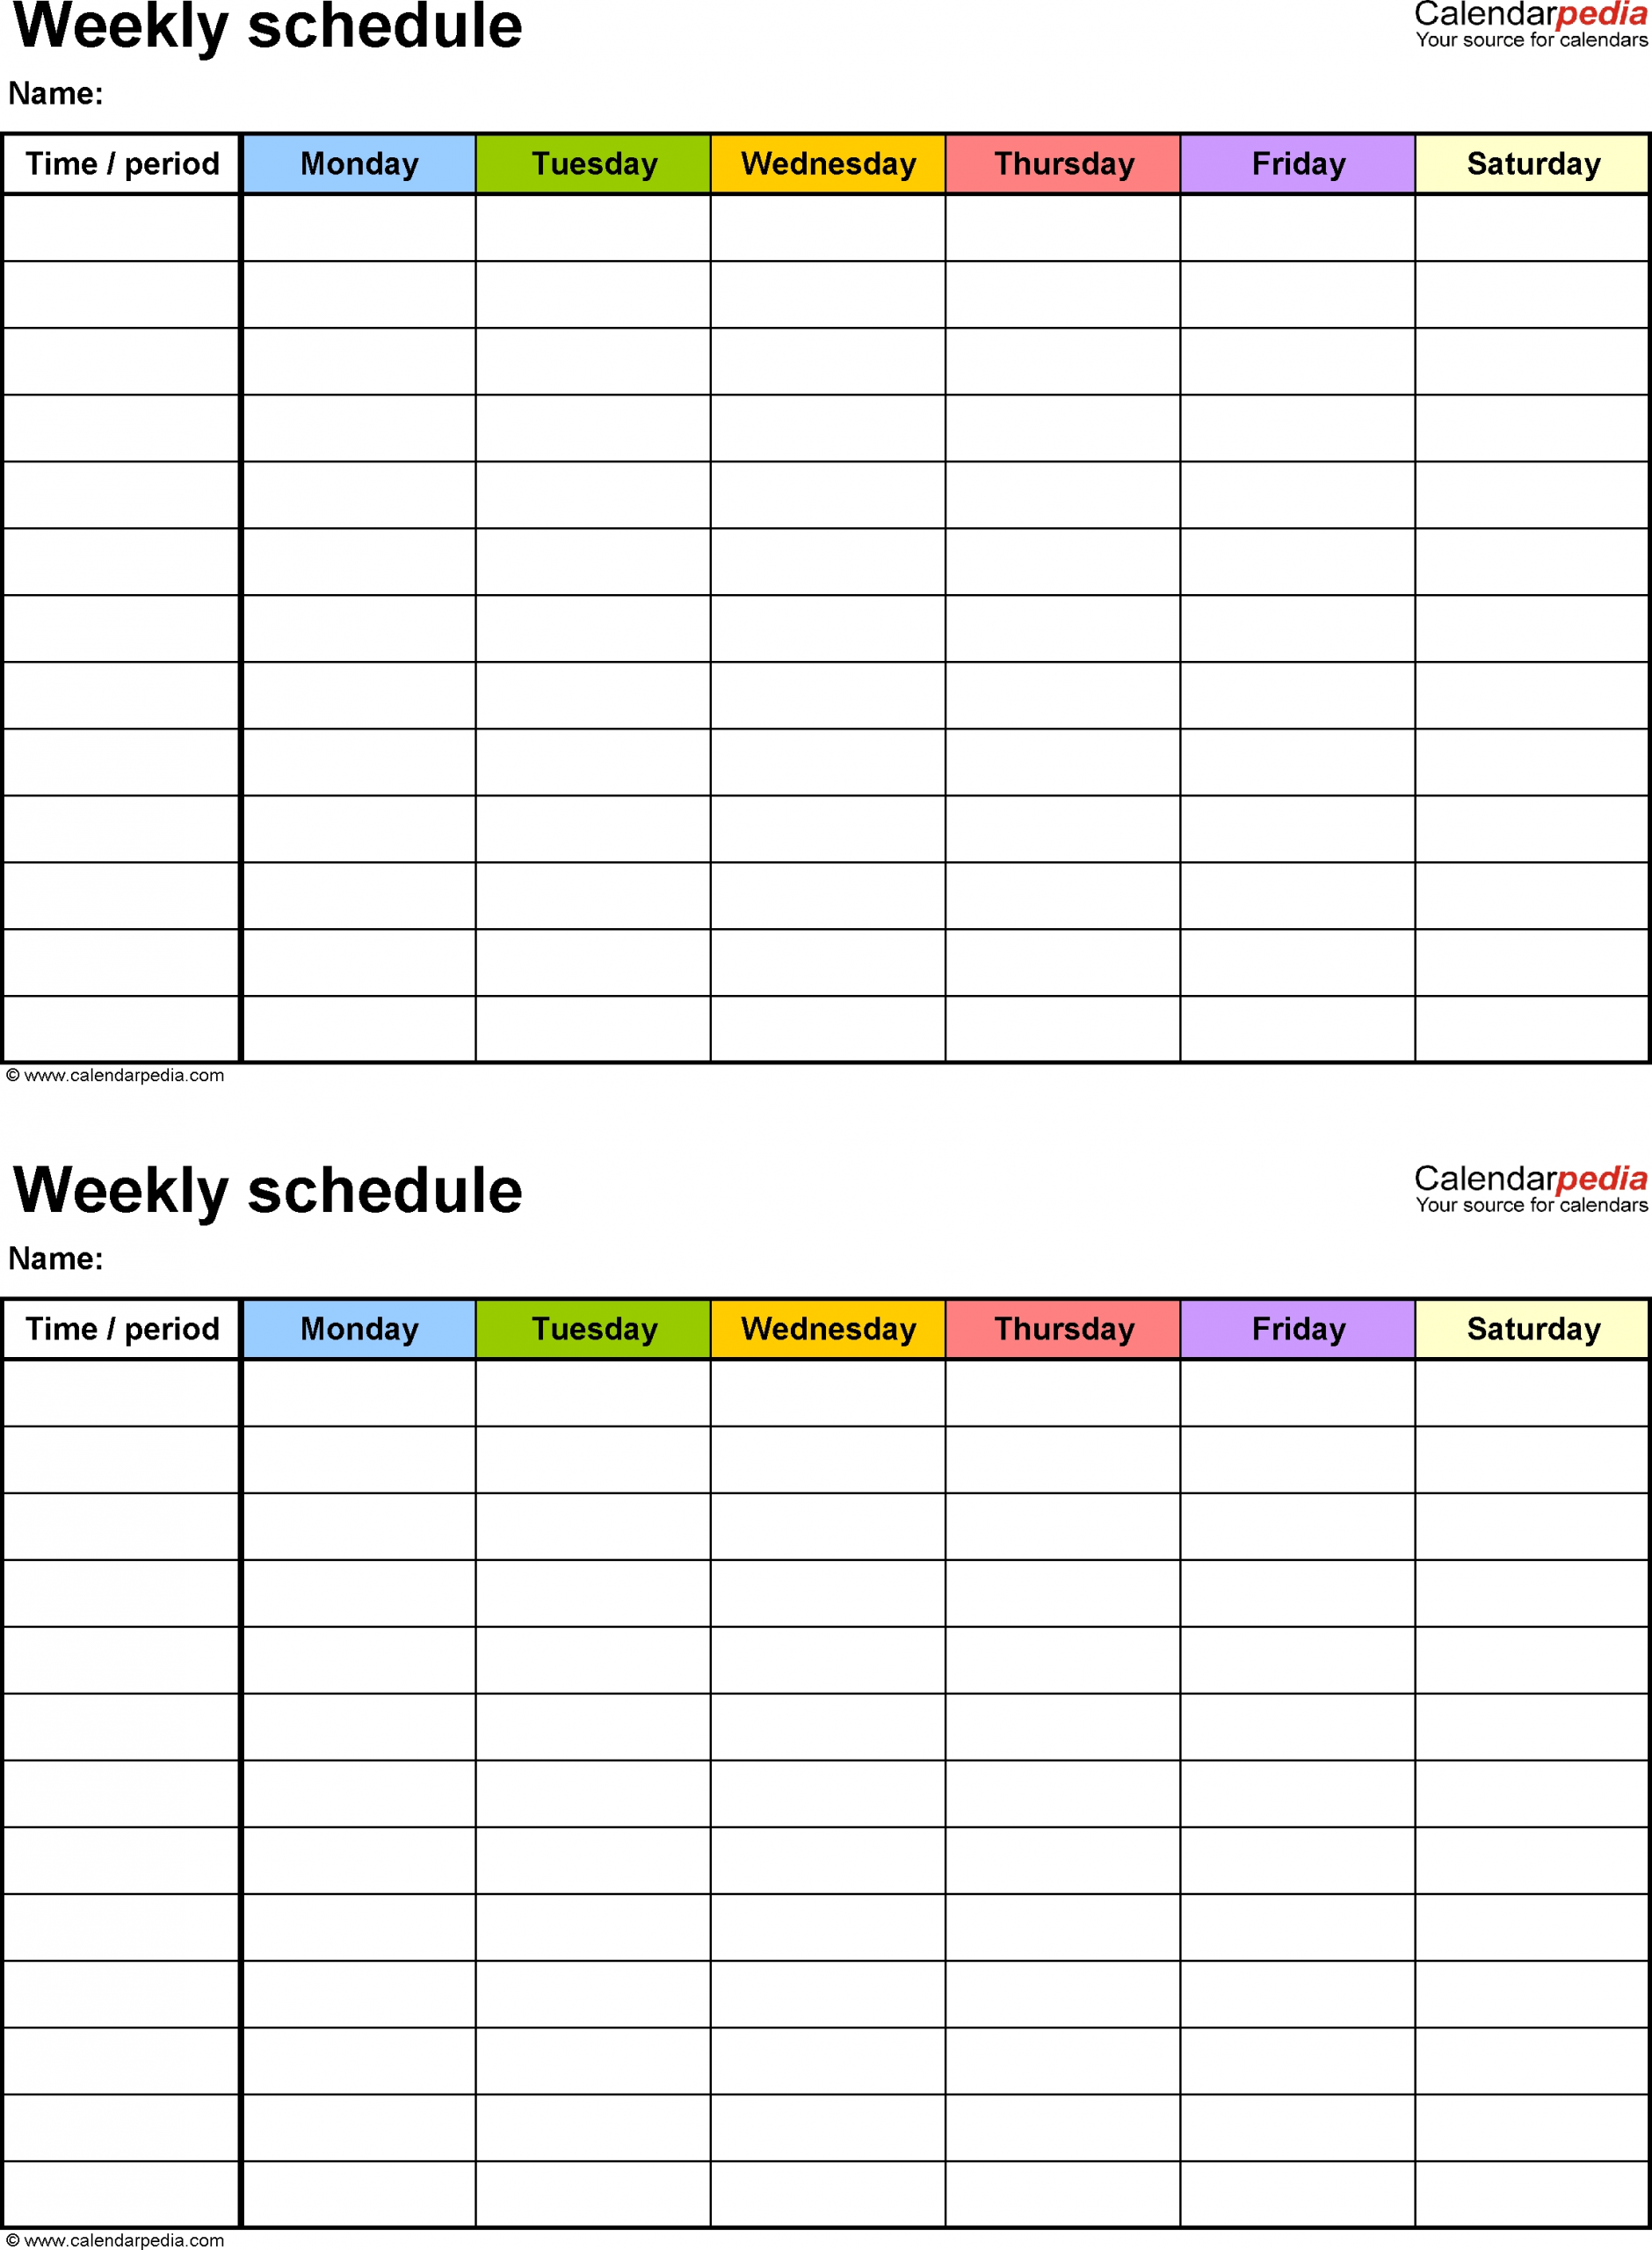 7 Day Week Calendar Printable - Calendar Inspiration Design Calendar Template For 7 Days